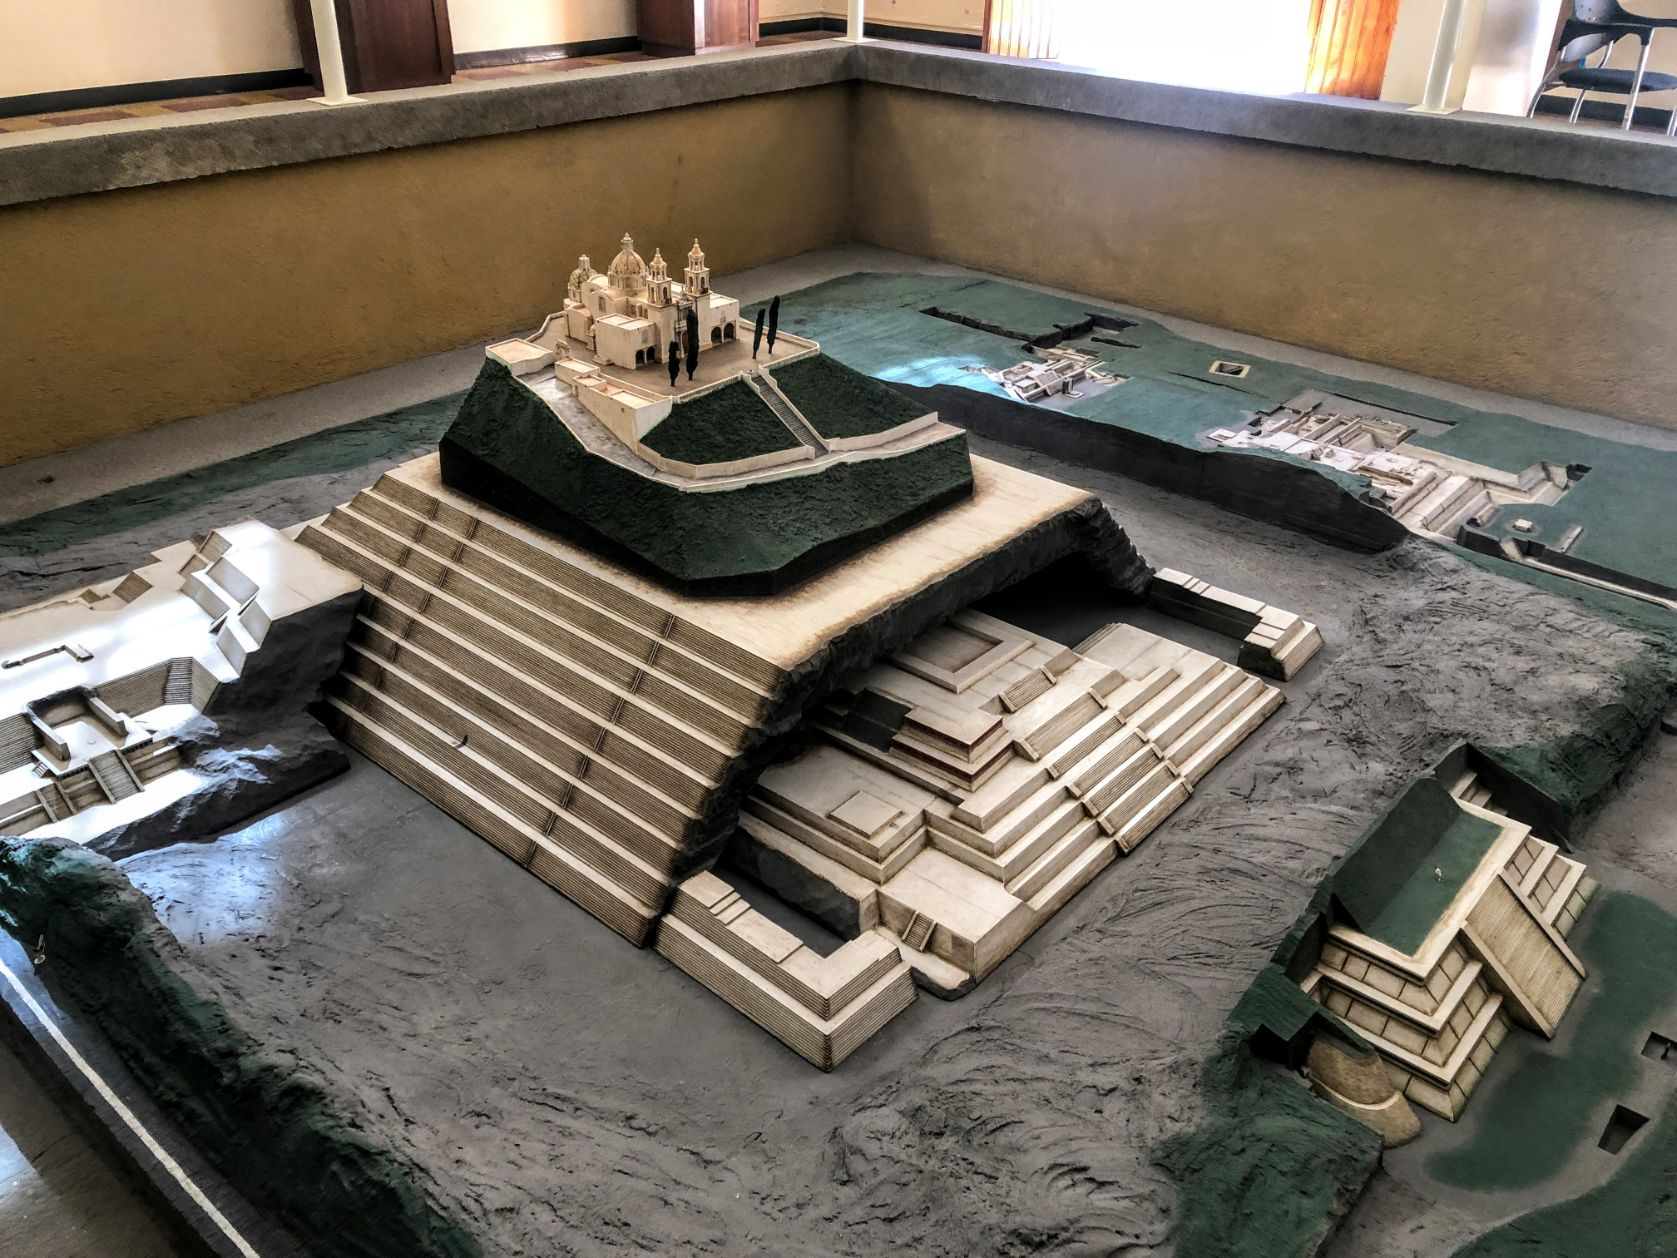 Replica of the Cholula ruins in the Cholula Pyramid museum